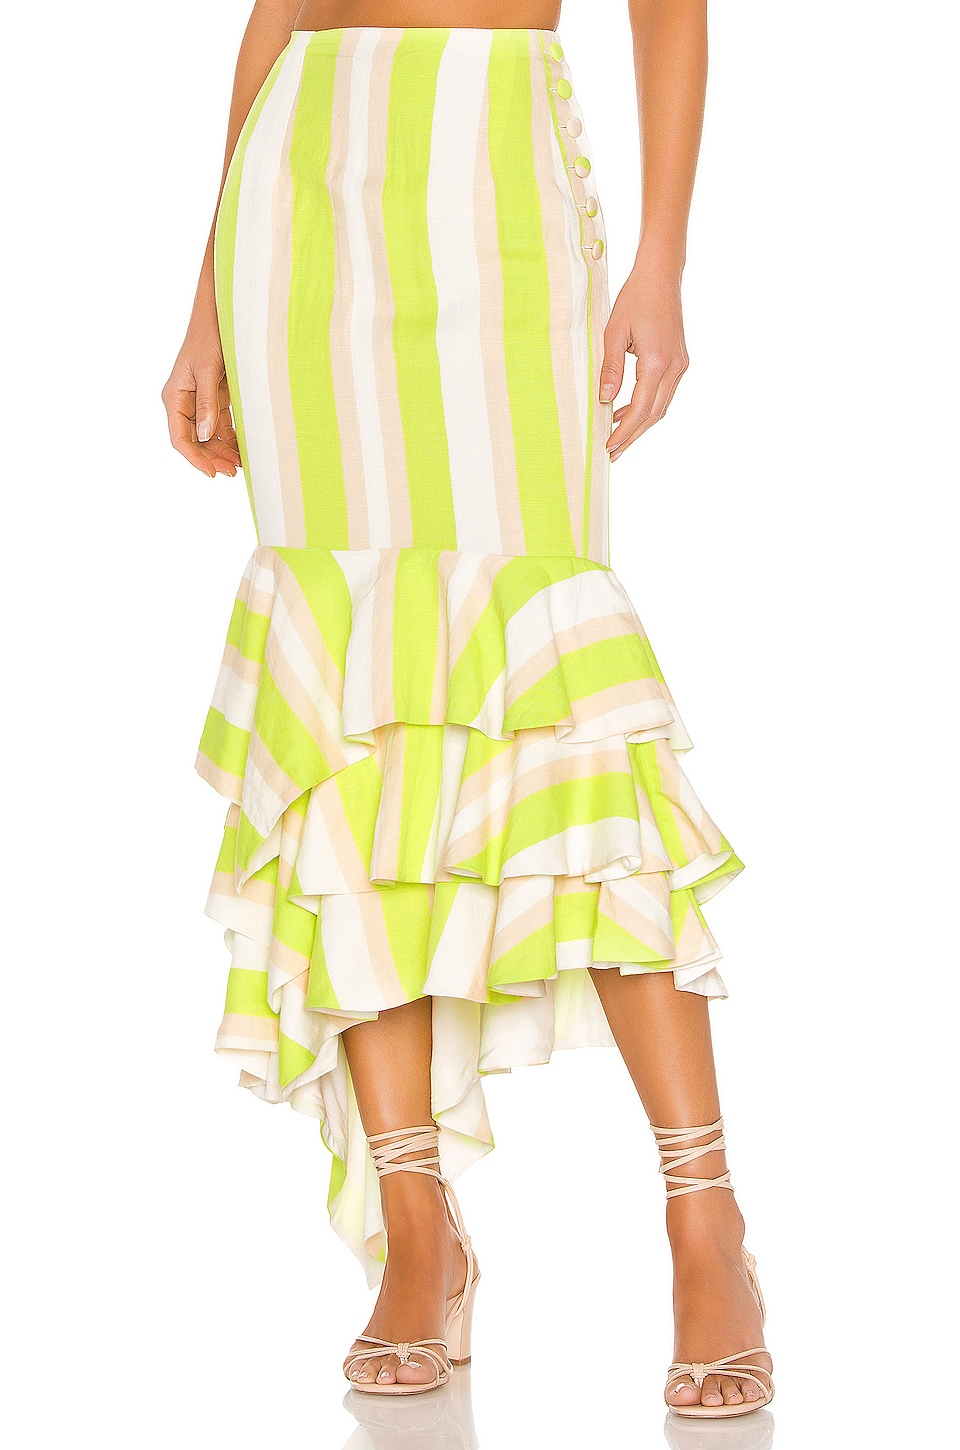 NBD Ayesha Midi Skirt in Lime & Ivory